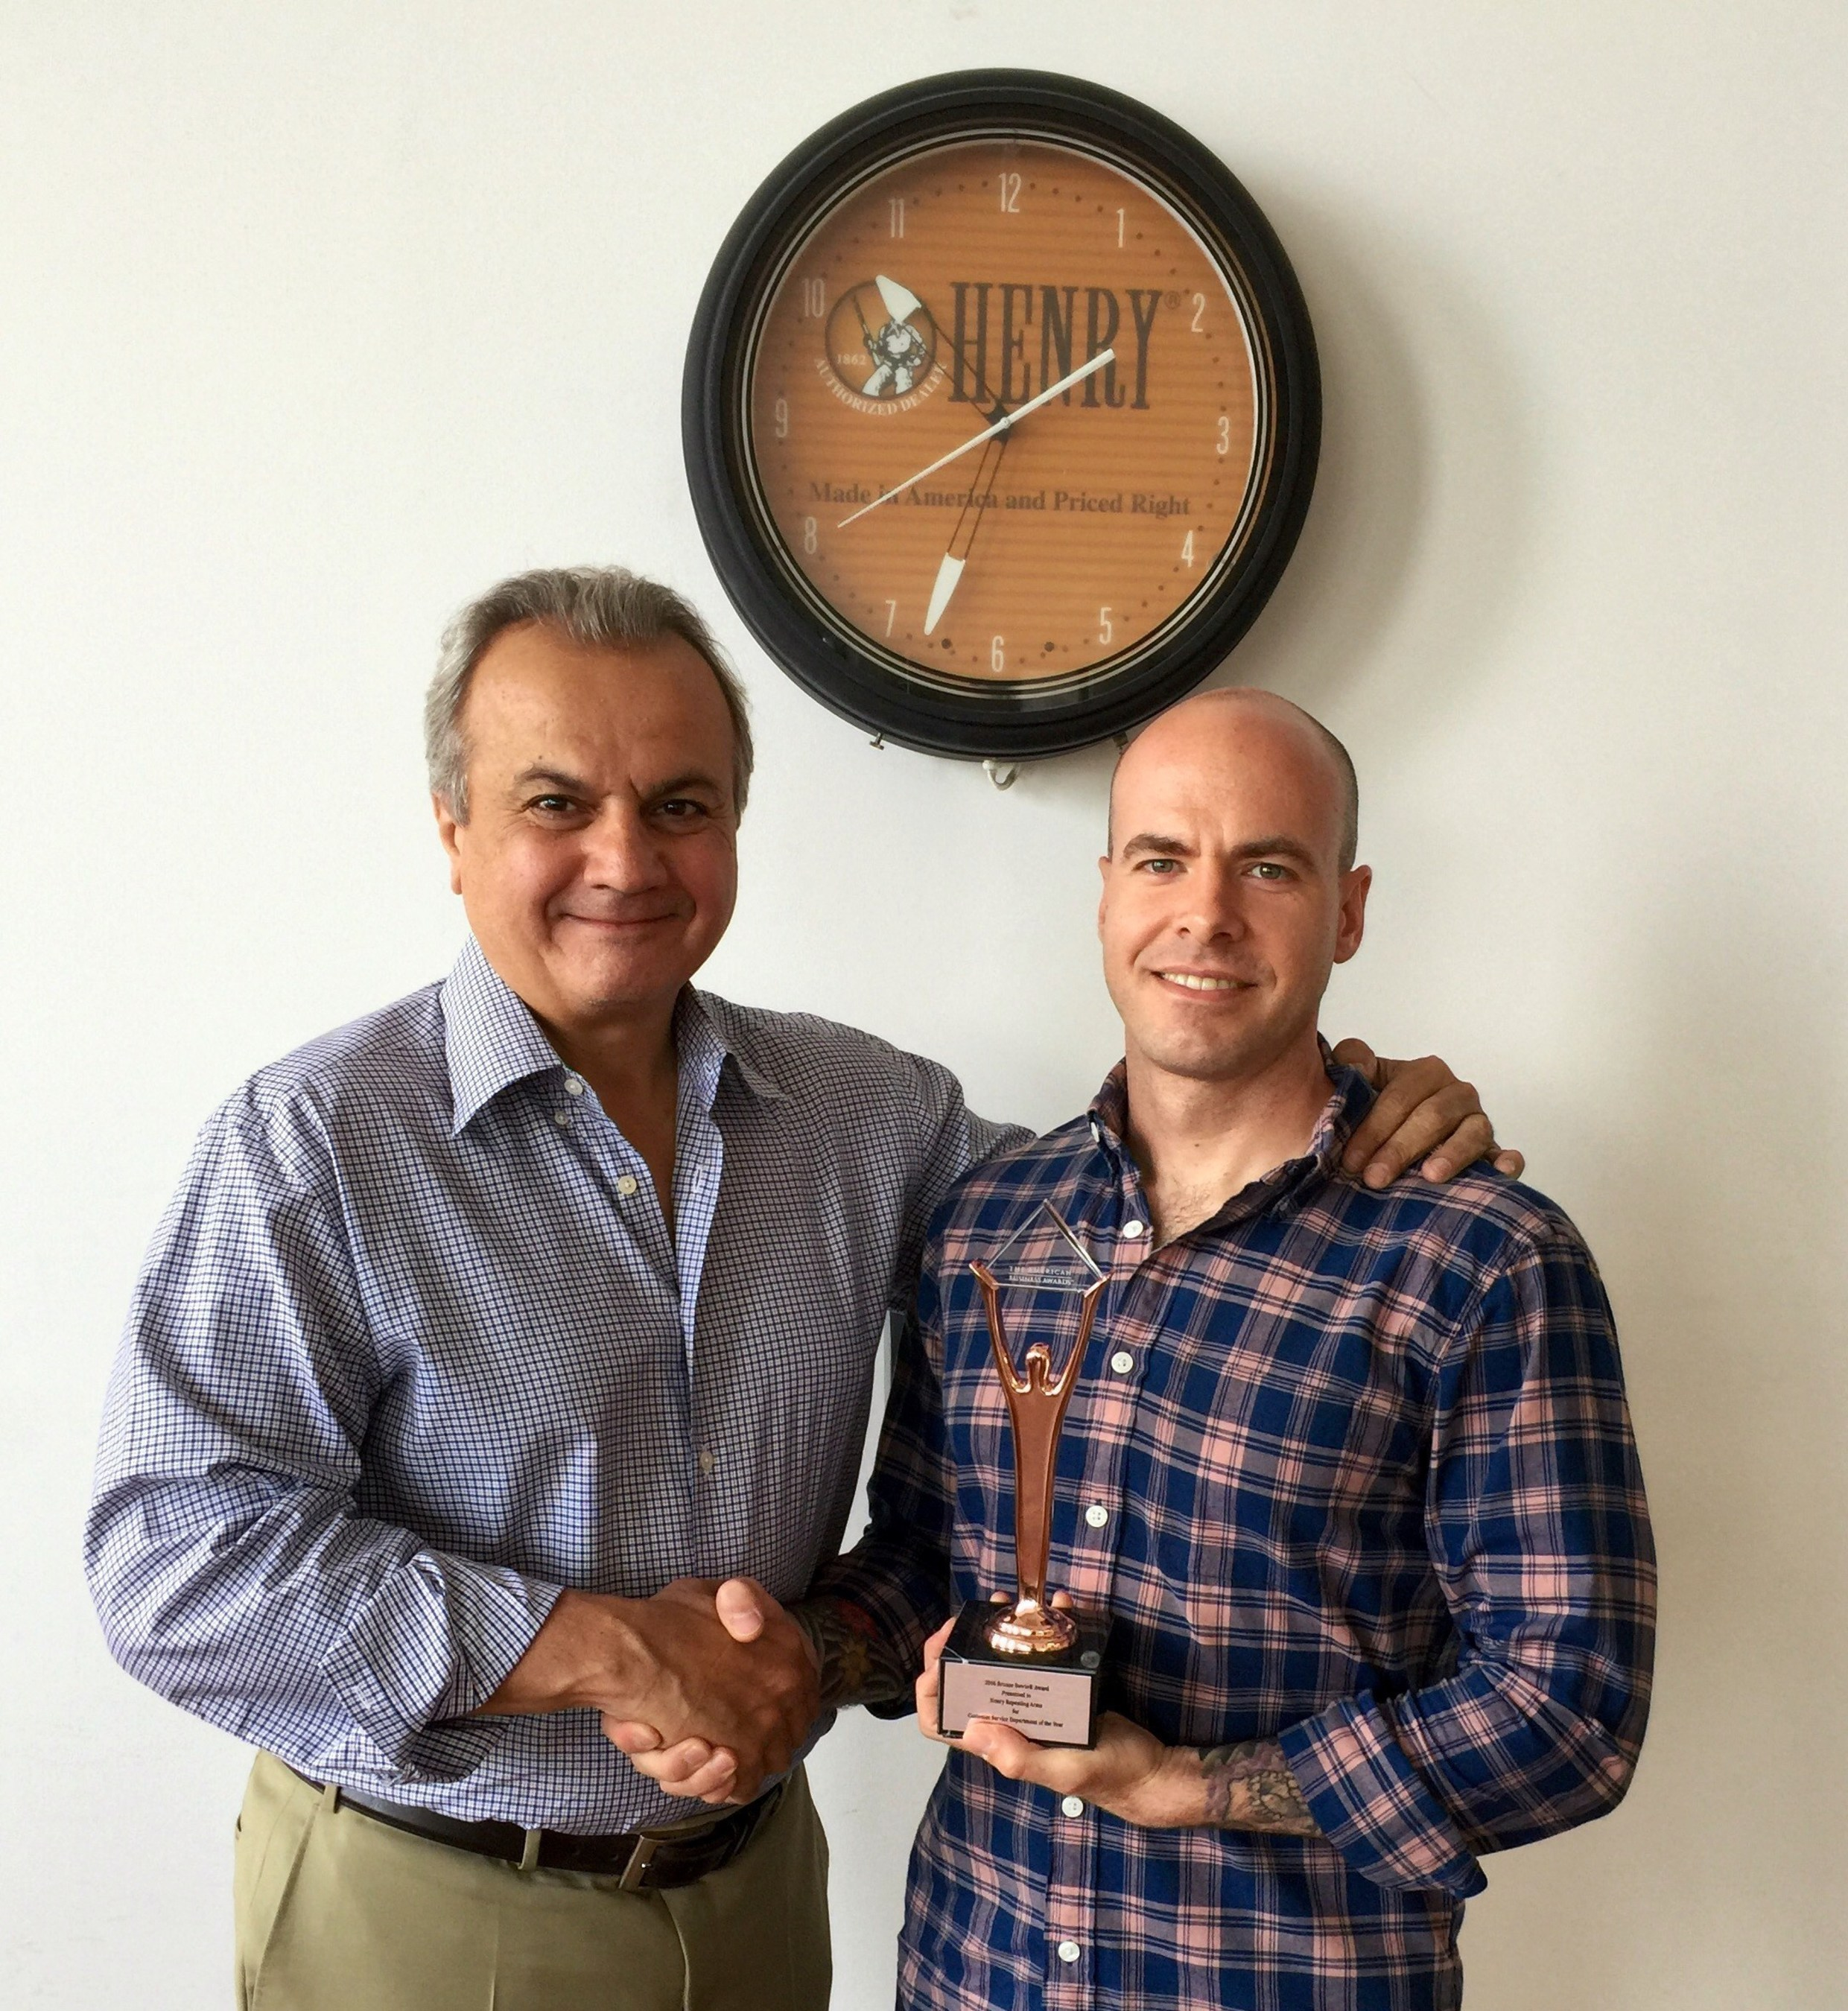 Henry Repeating Arms wins Customer Service and Social Media American Business Stevie(R) Awards.Anthony Imperato, President of Henry Repeating Arms (L) and Customer Service Supervisor, Tom Kotz